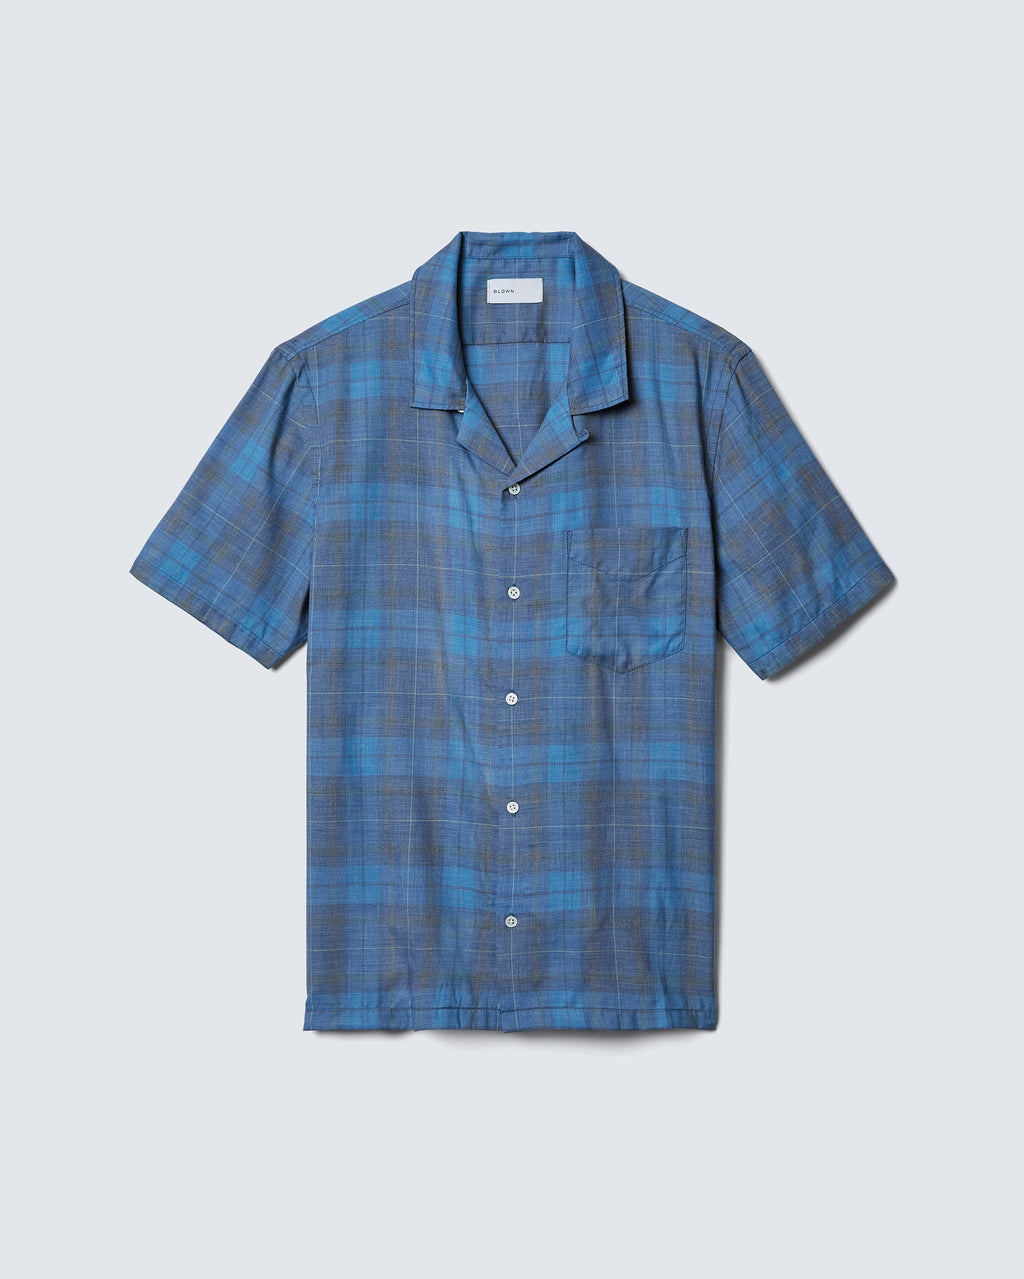 The Cabus Shirt in Teal